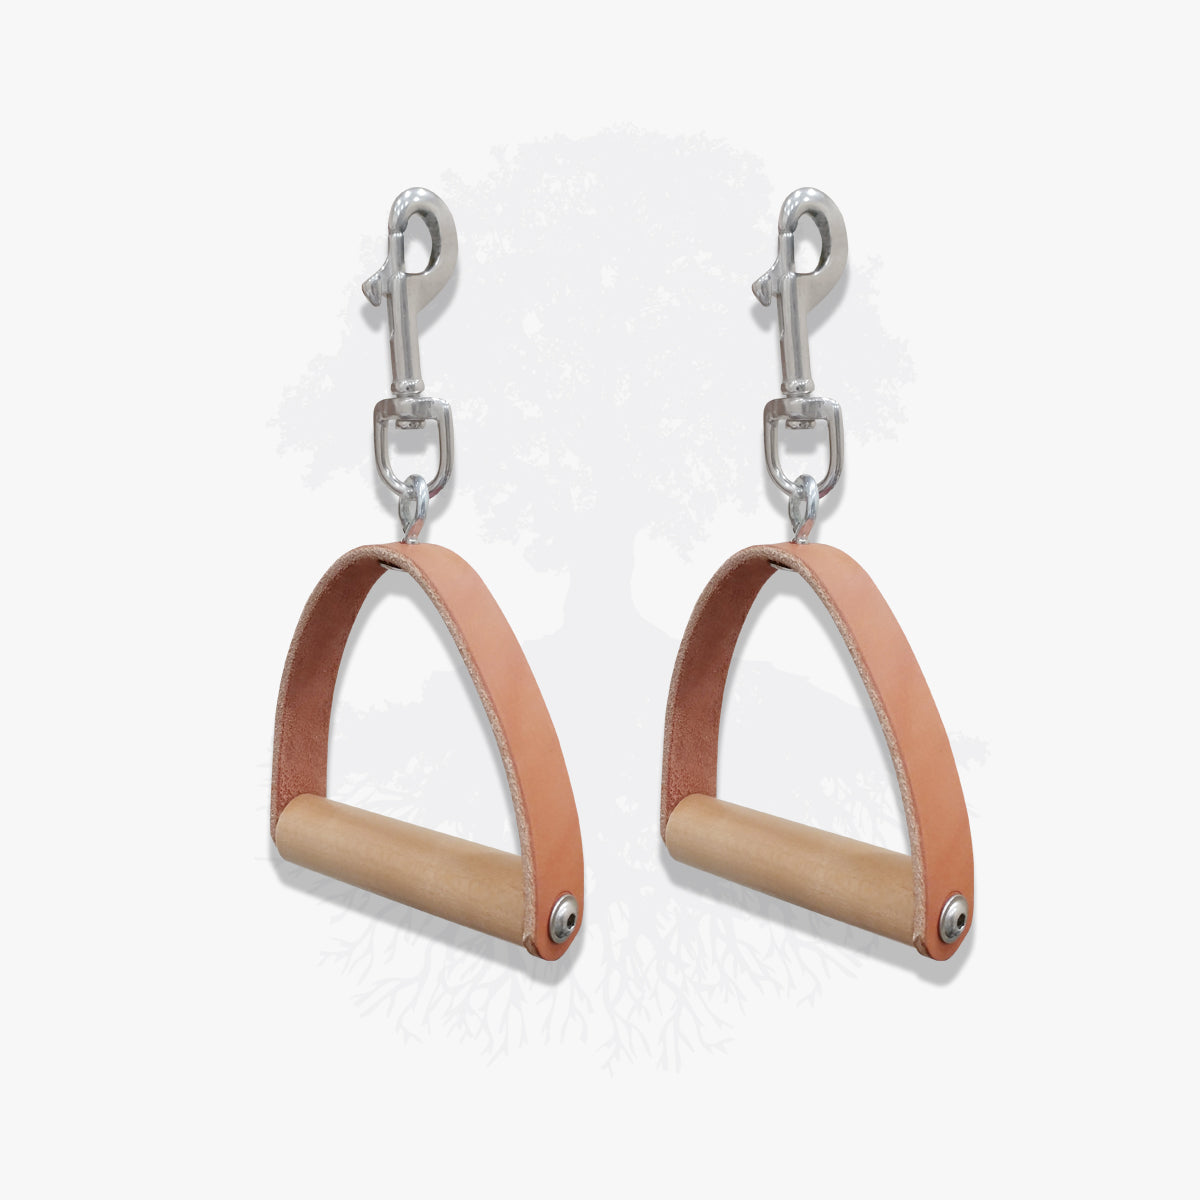 Pilates Lineage Pair of Apparatus Handles in Natural Leather